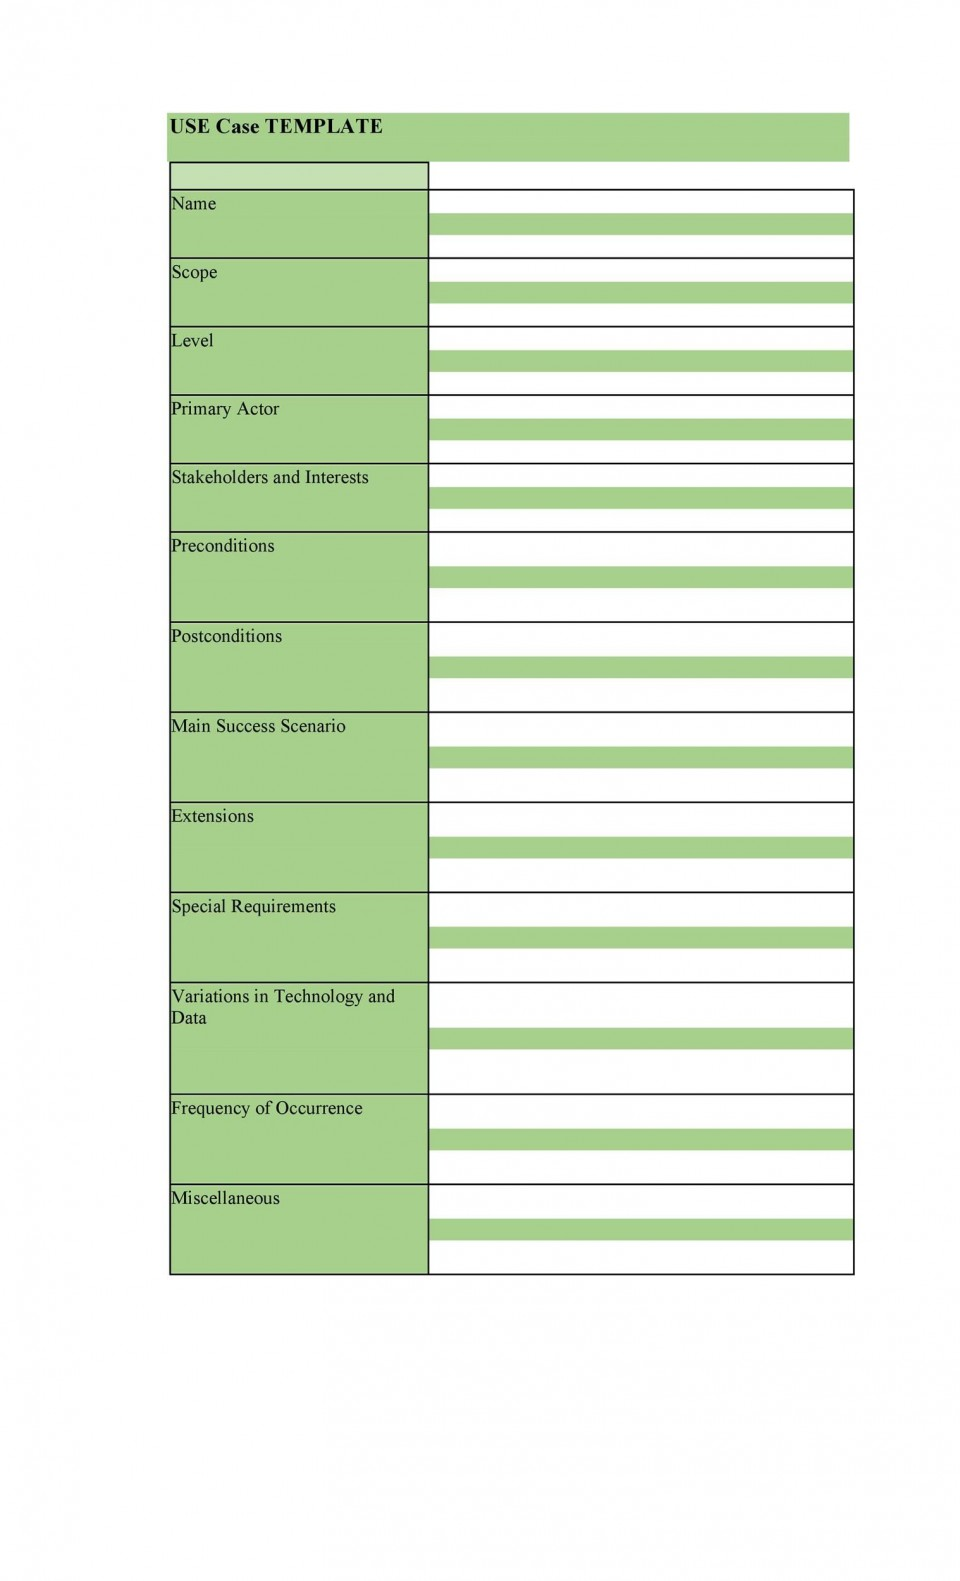 006 Awesome Use Case Template Word Idea  Doc Test960